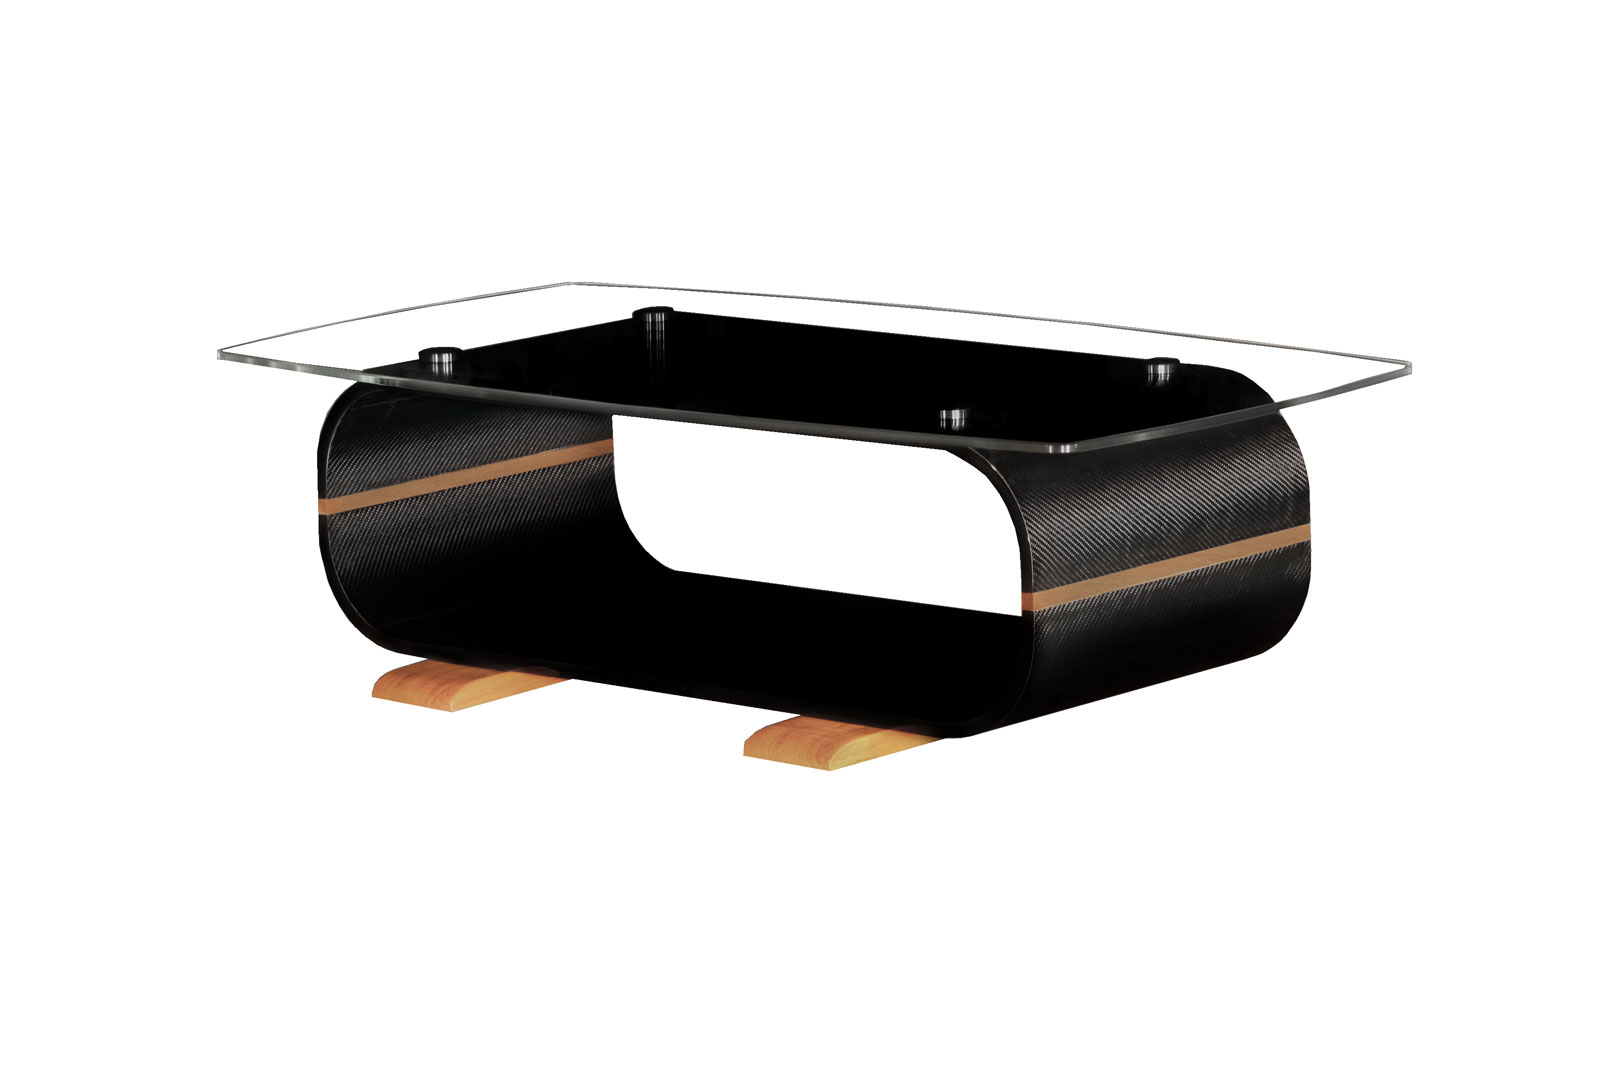 Carbon coffee table, high-tech by Carbotion, Switzerland